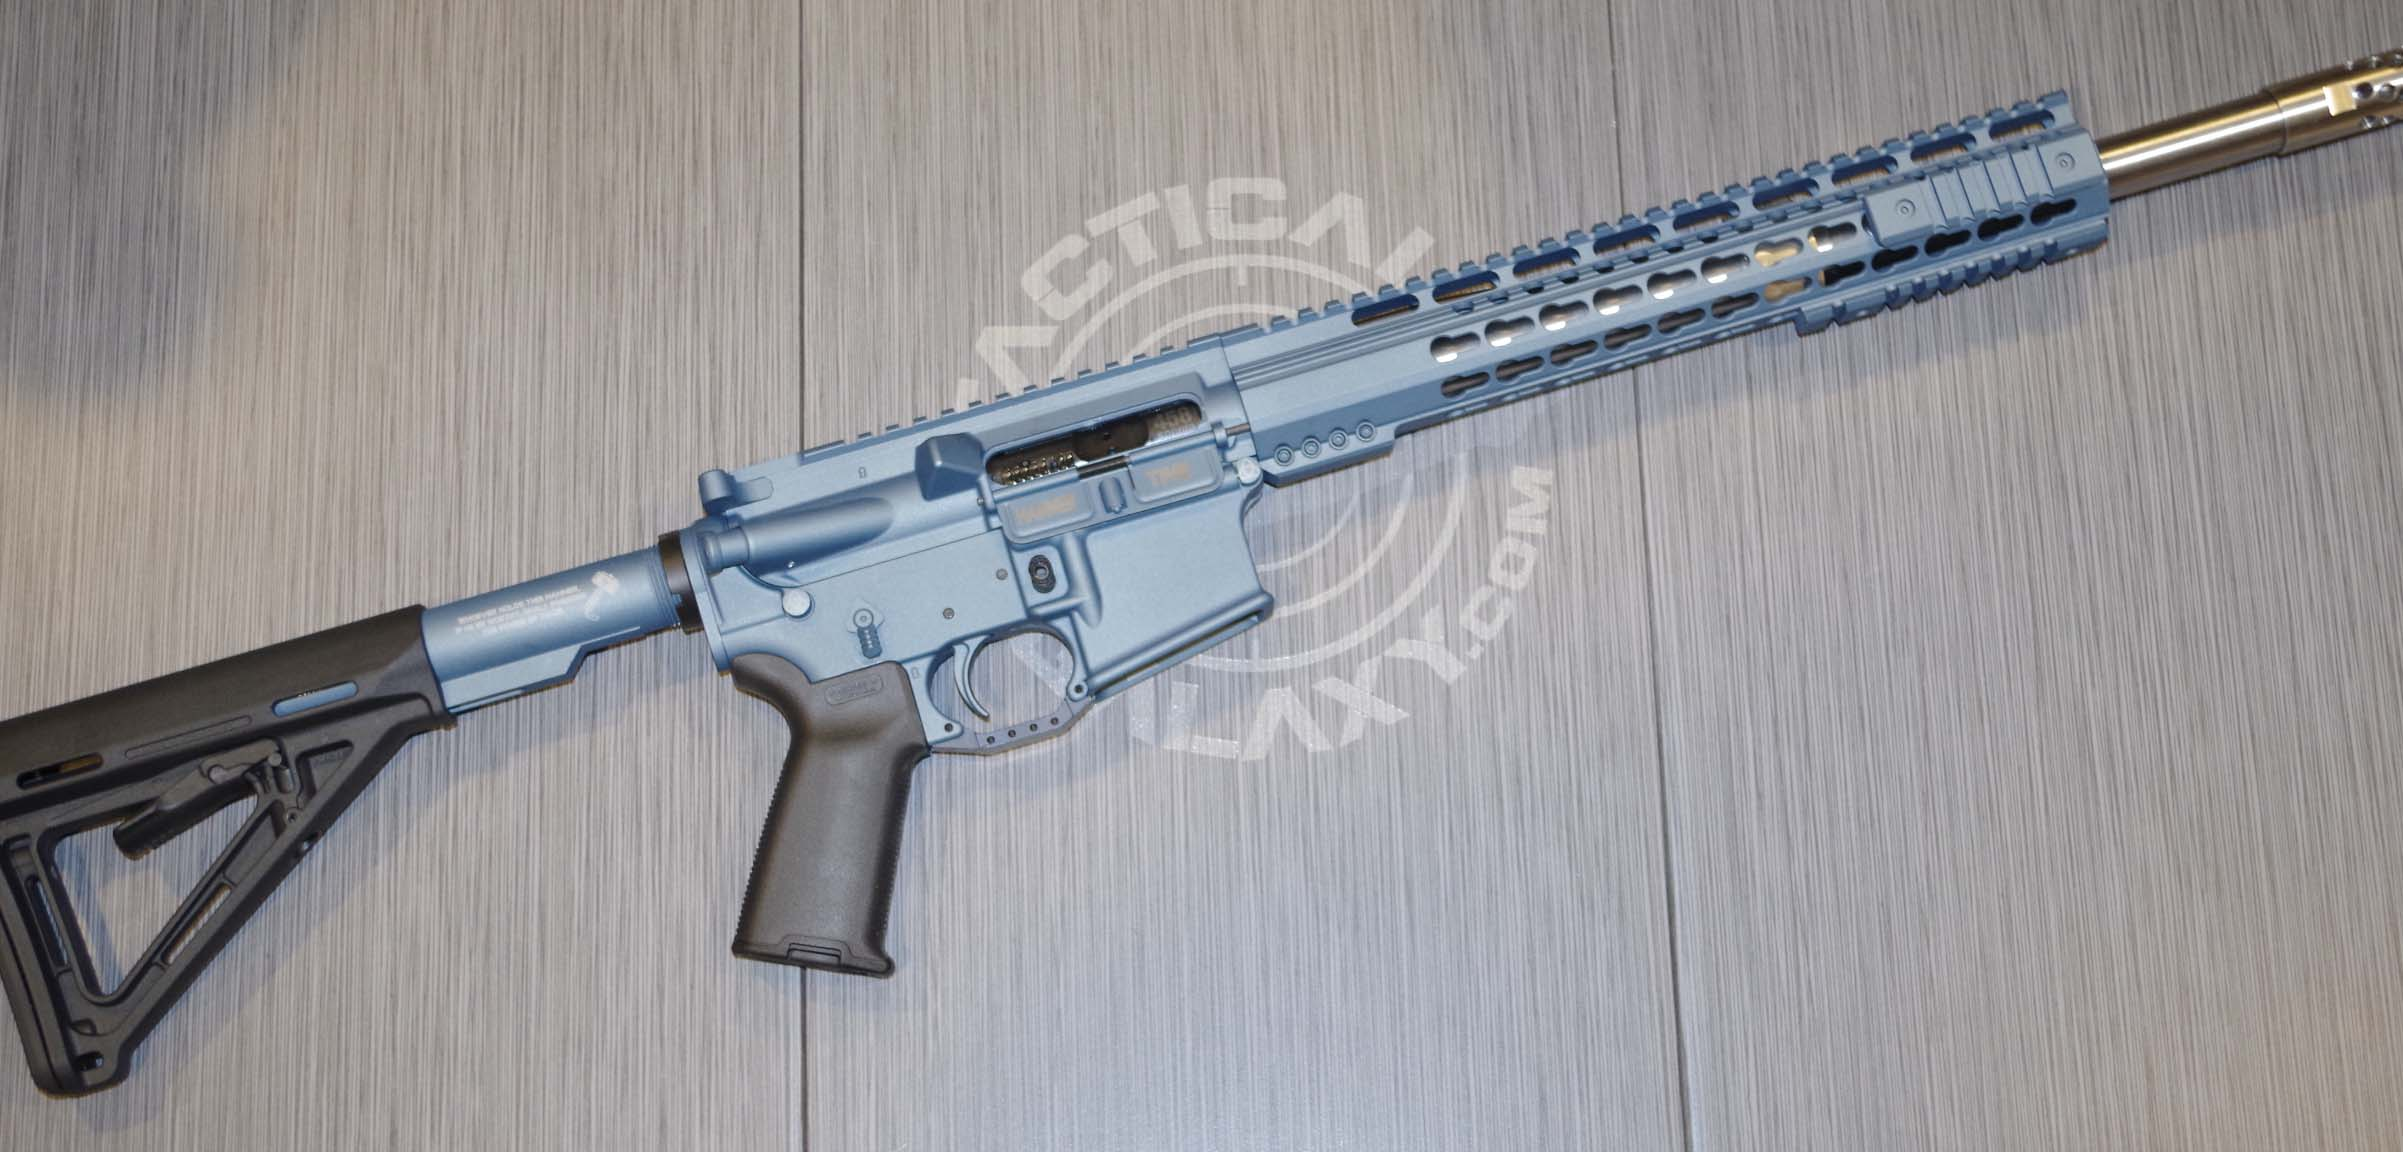 TITIANIUM BLUE CERAKOTE AR-15 PARTS